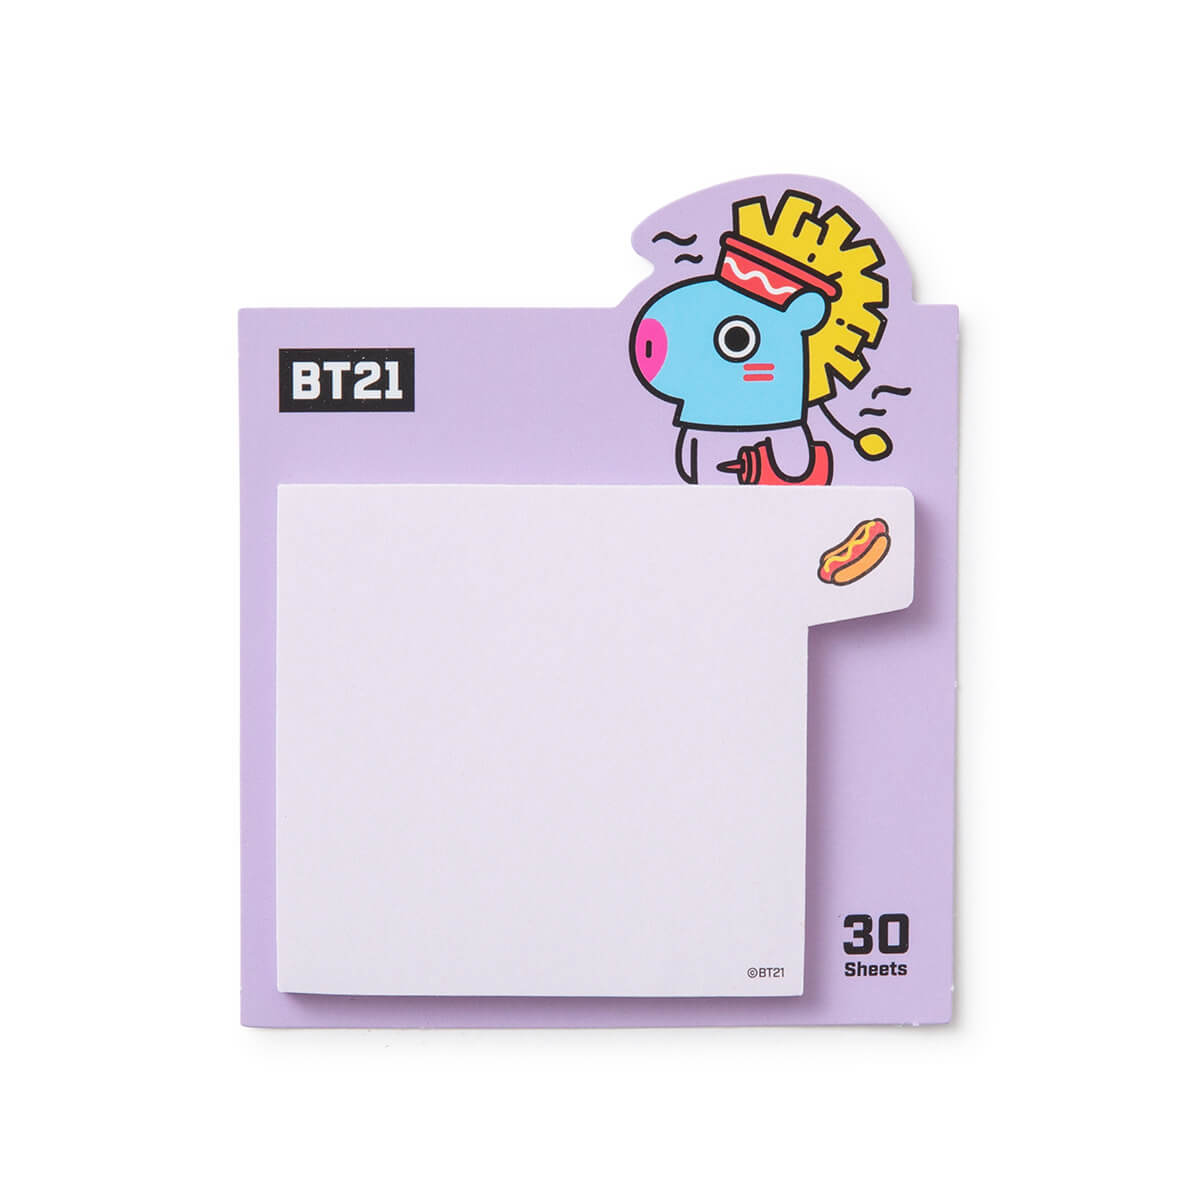 BT21 MANG BITE Sticky Note